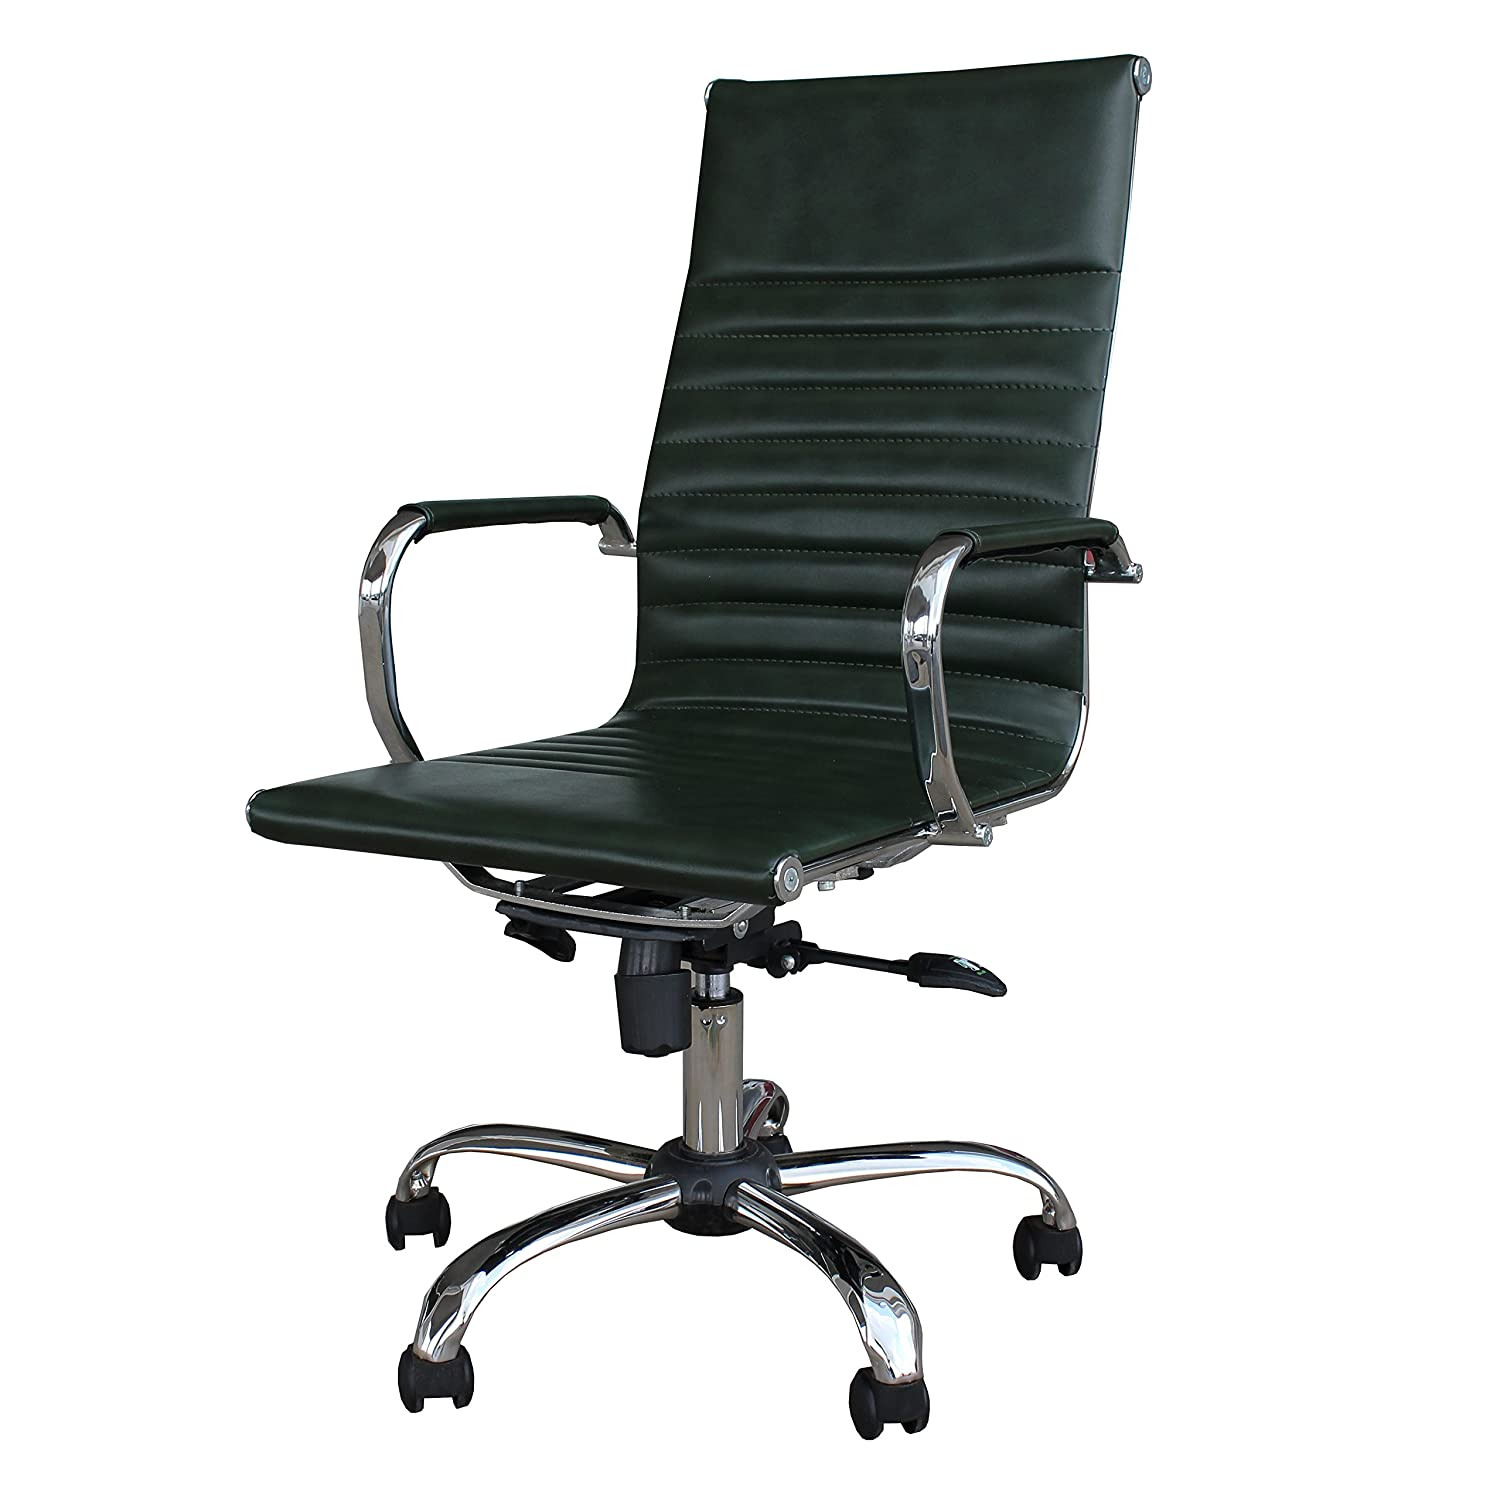 Winport Furniture WF-7911 Elegance High-Back Leather Swivel Office & Home Desk/Task Chair, Black